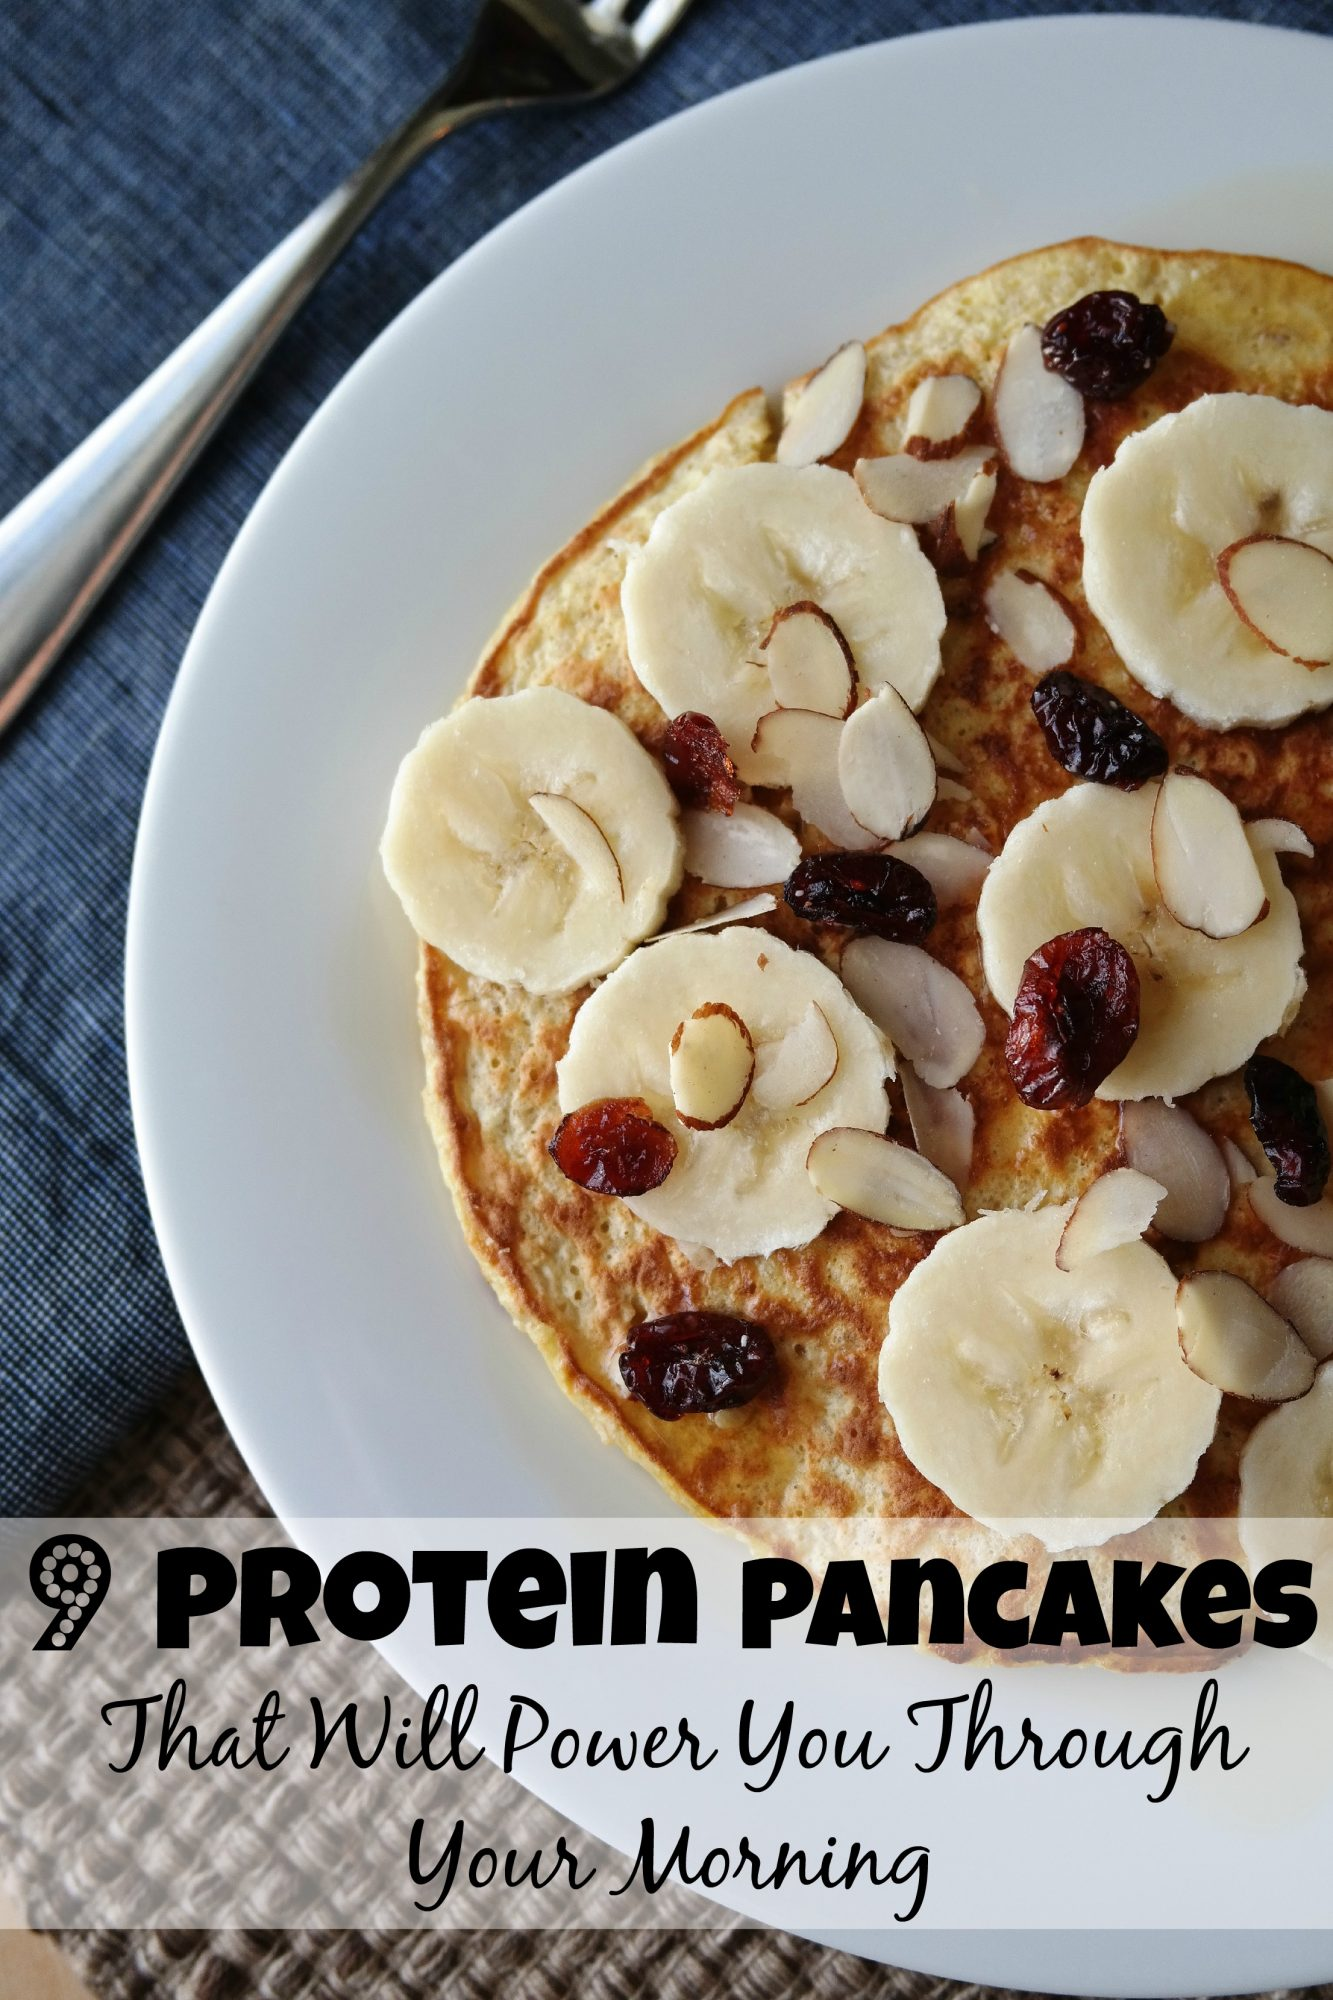 9-protein-pancake-recipes-that-will-power-you-through-your-morning.jpg